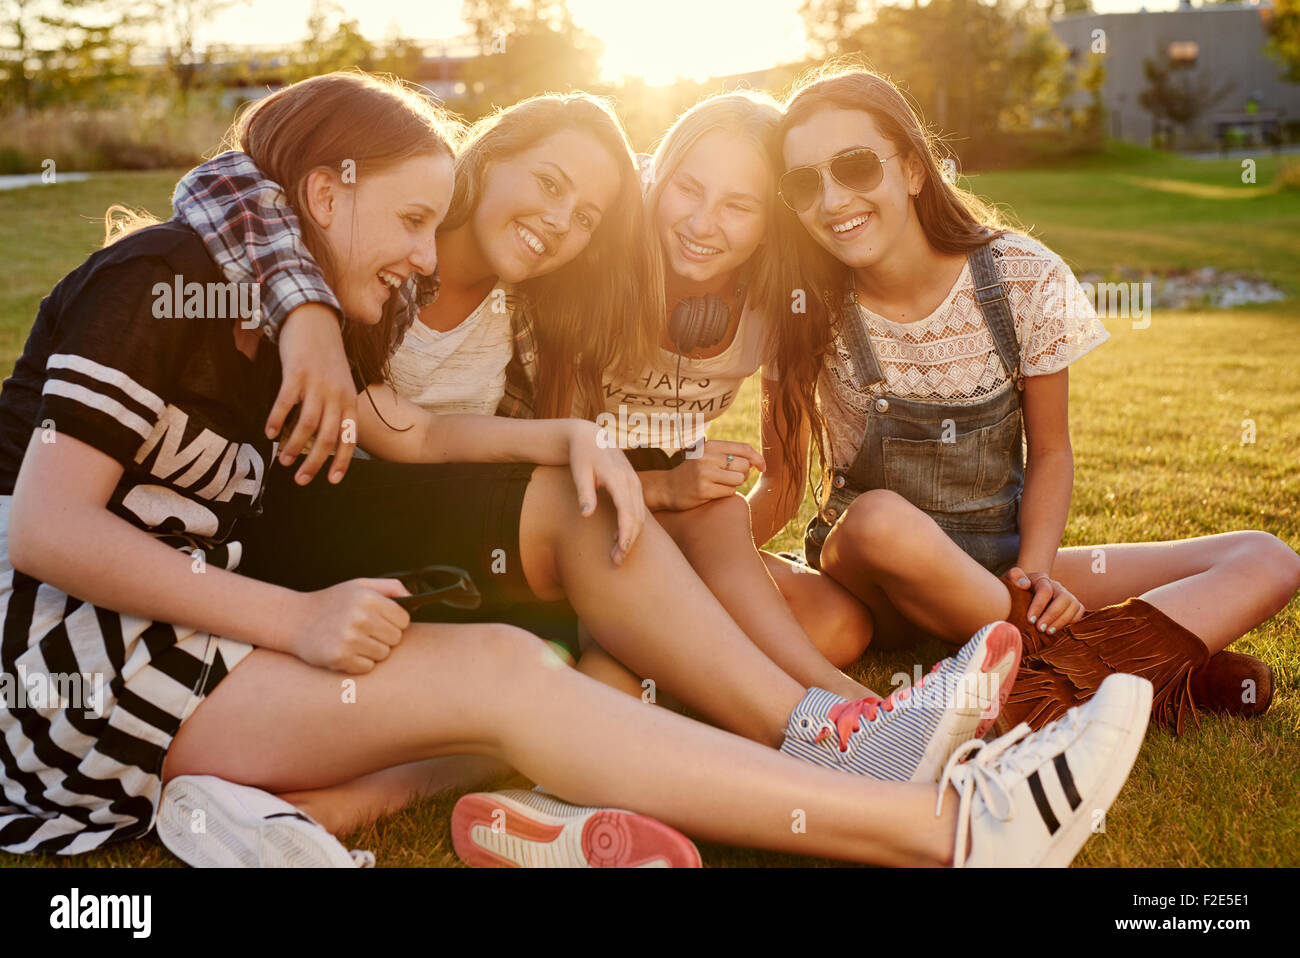 Best friends hanging out on a summer evening in a park - Stock Image